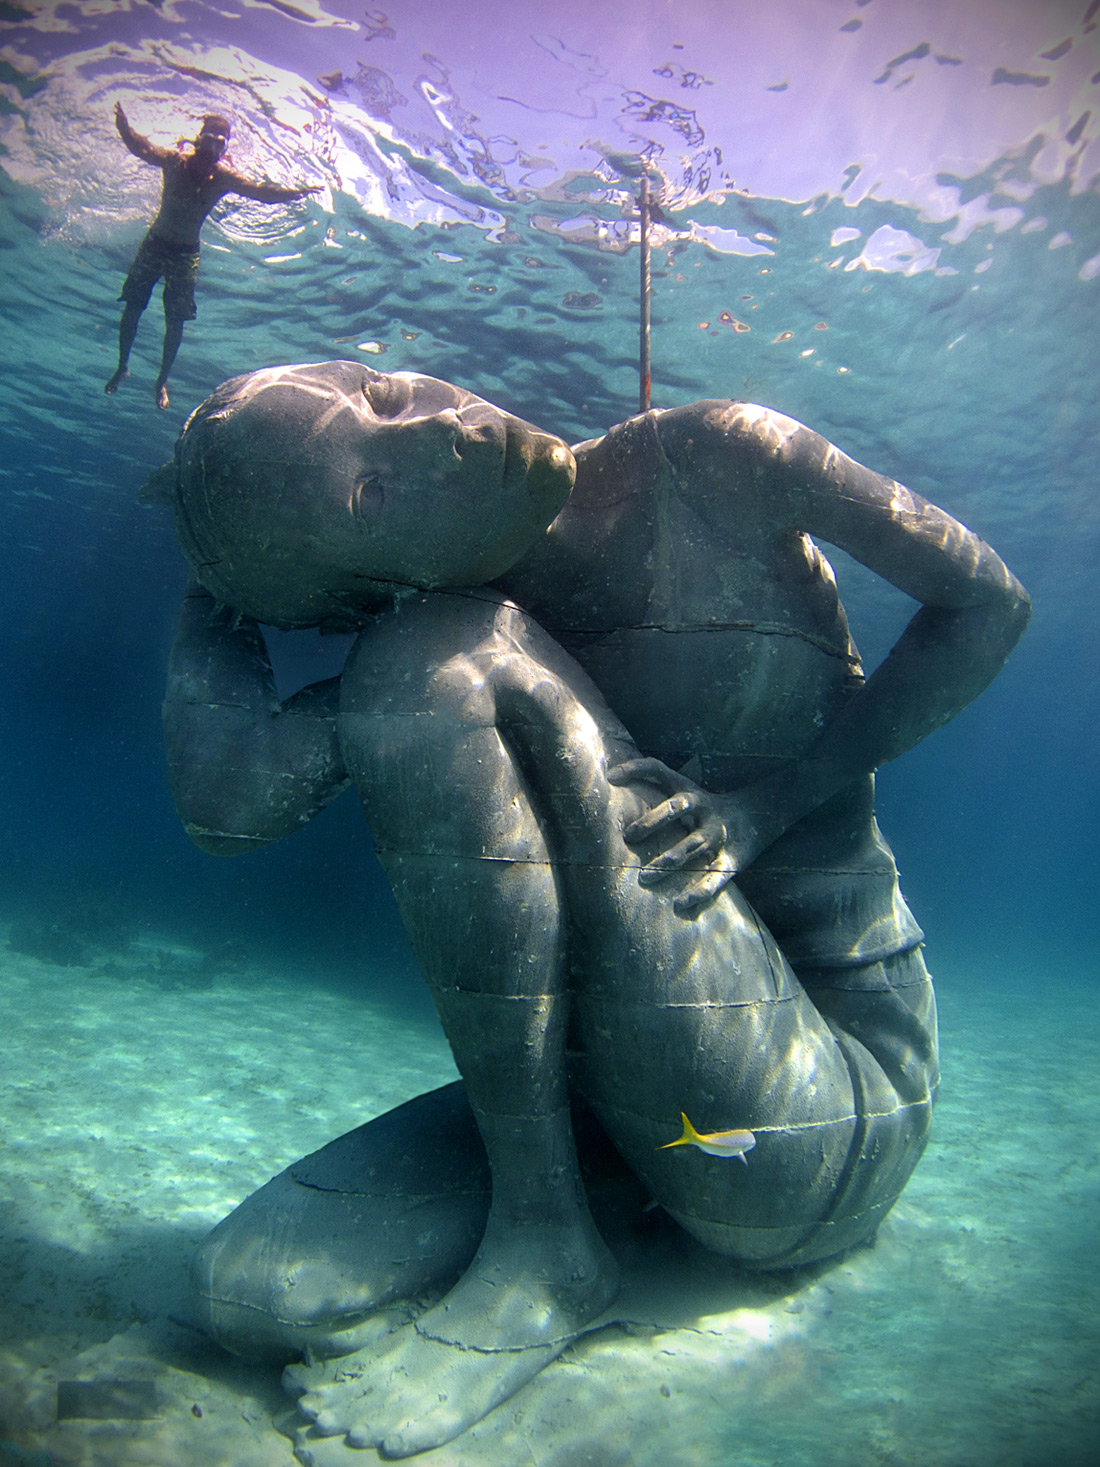 Image from https://www.thisiscolossal.com/2014/10/ocean-atlas-a-massive-submerged-girl-carries-the-weight-of-the-ocean/